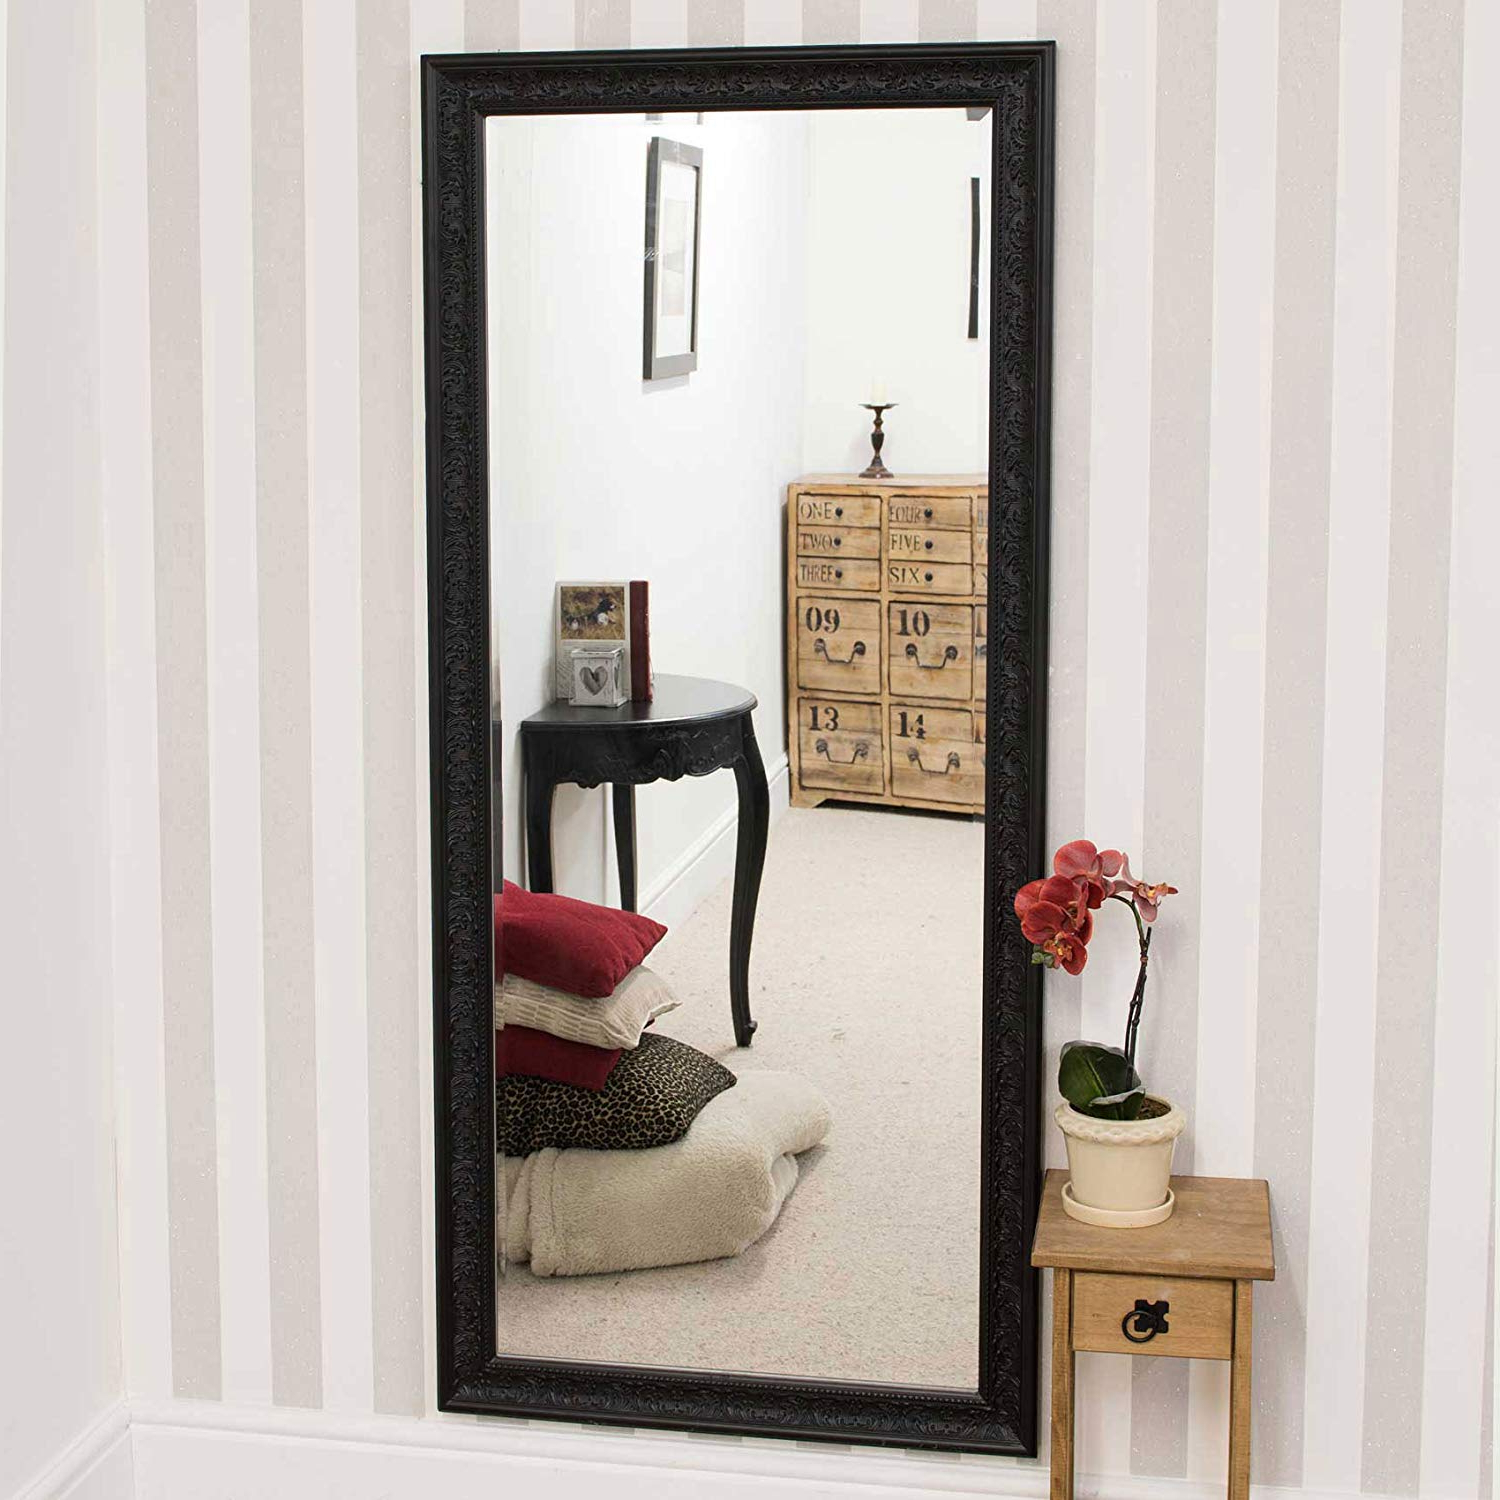 Large Antique Design Full Length Wall Mirror, Black, 160 X 73 Cm With Regard To Recent Floor Length Wall Mirrors (View 11 of 20)